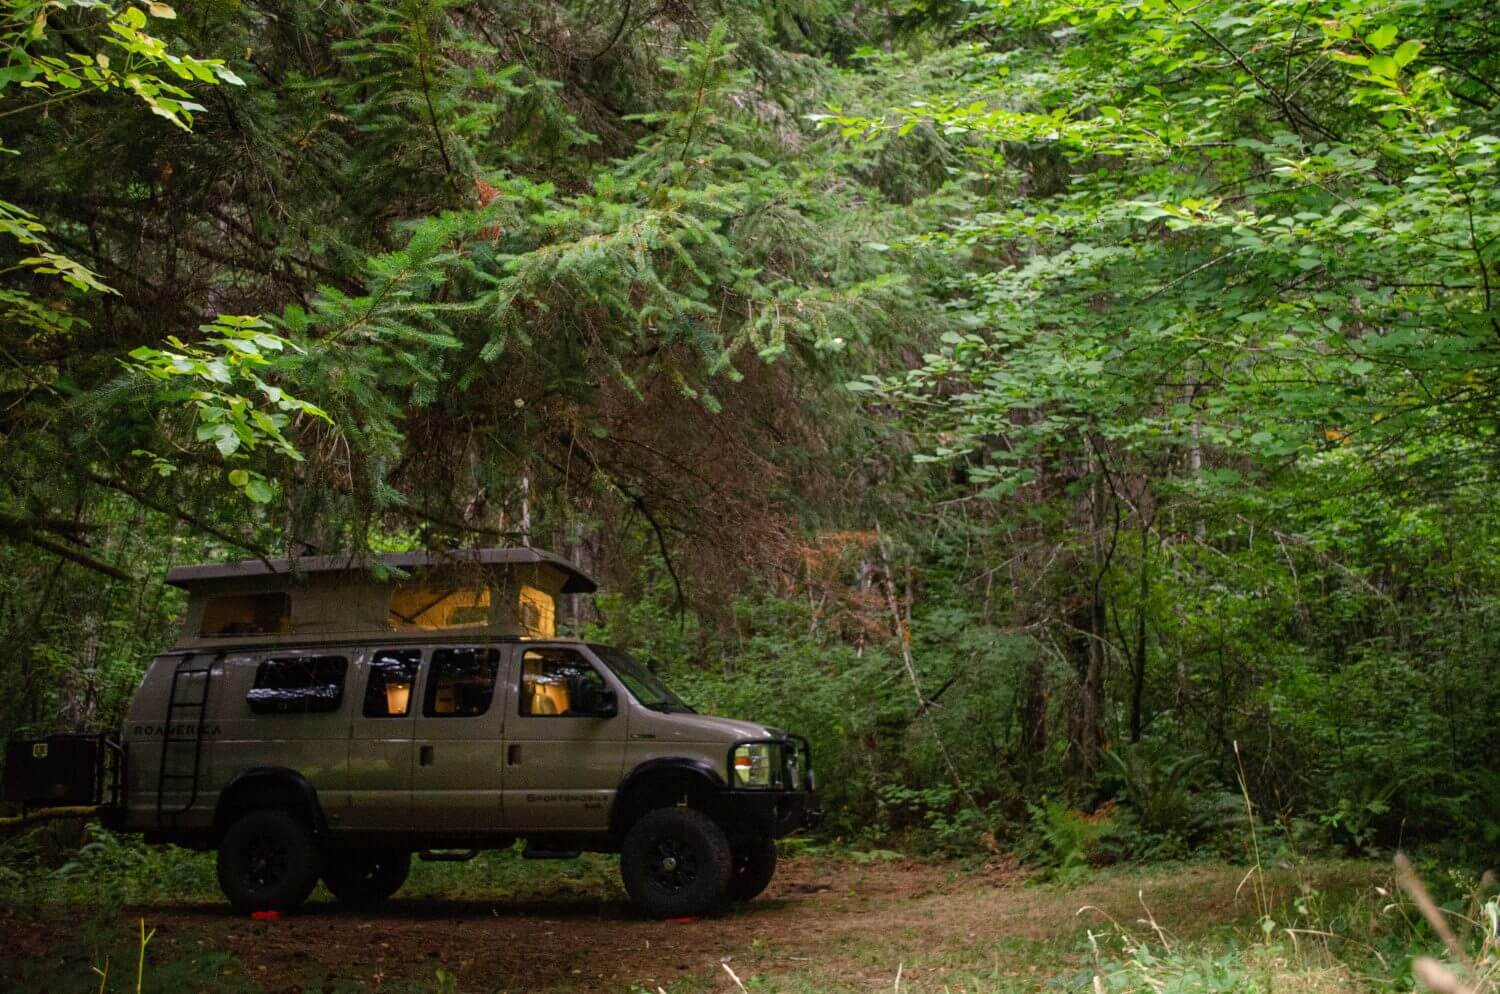 Forest RV camping in Oregon